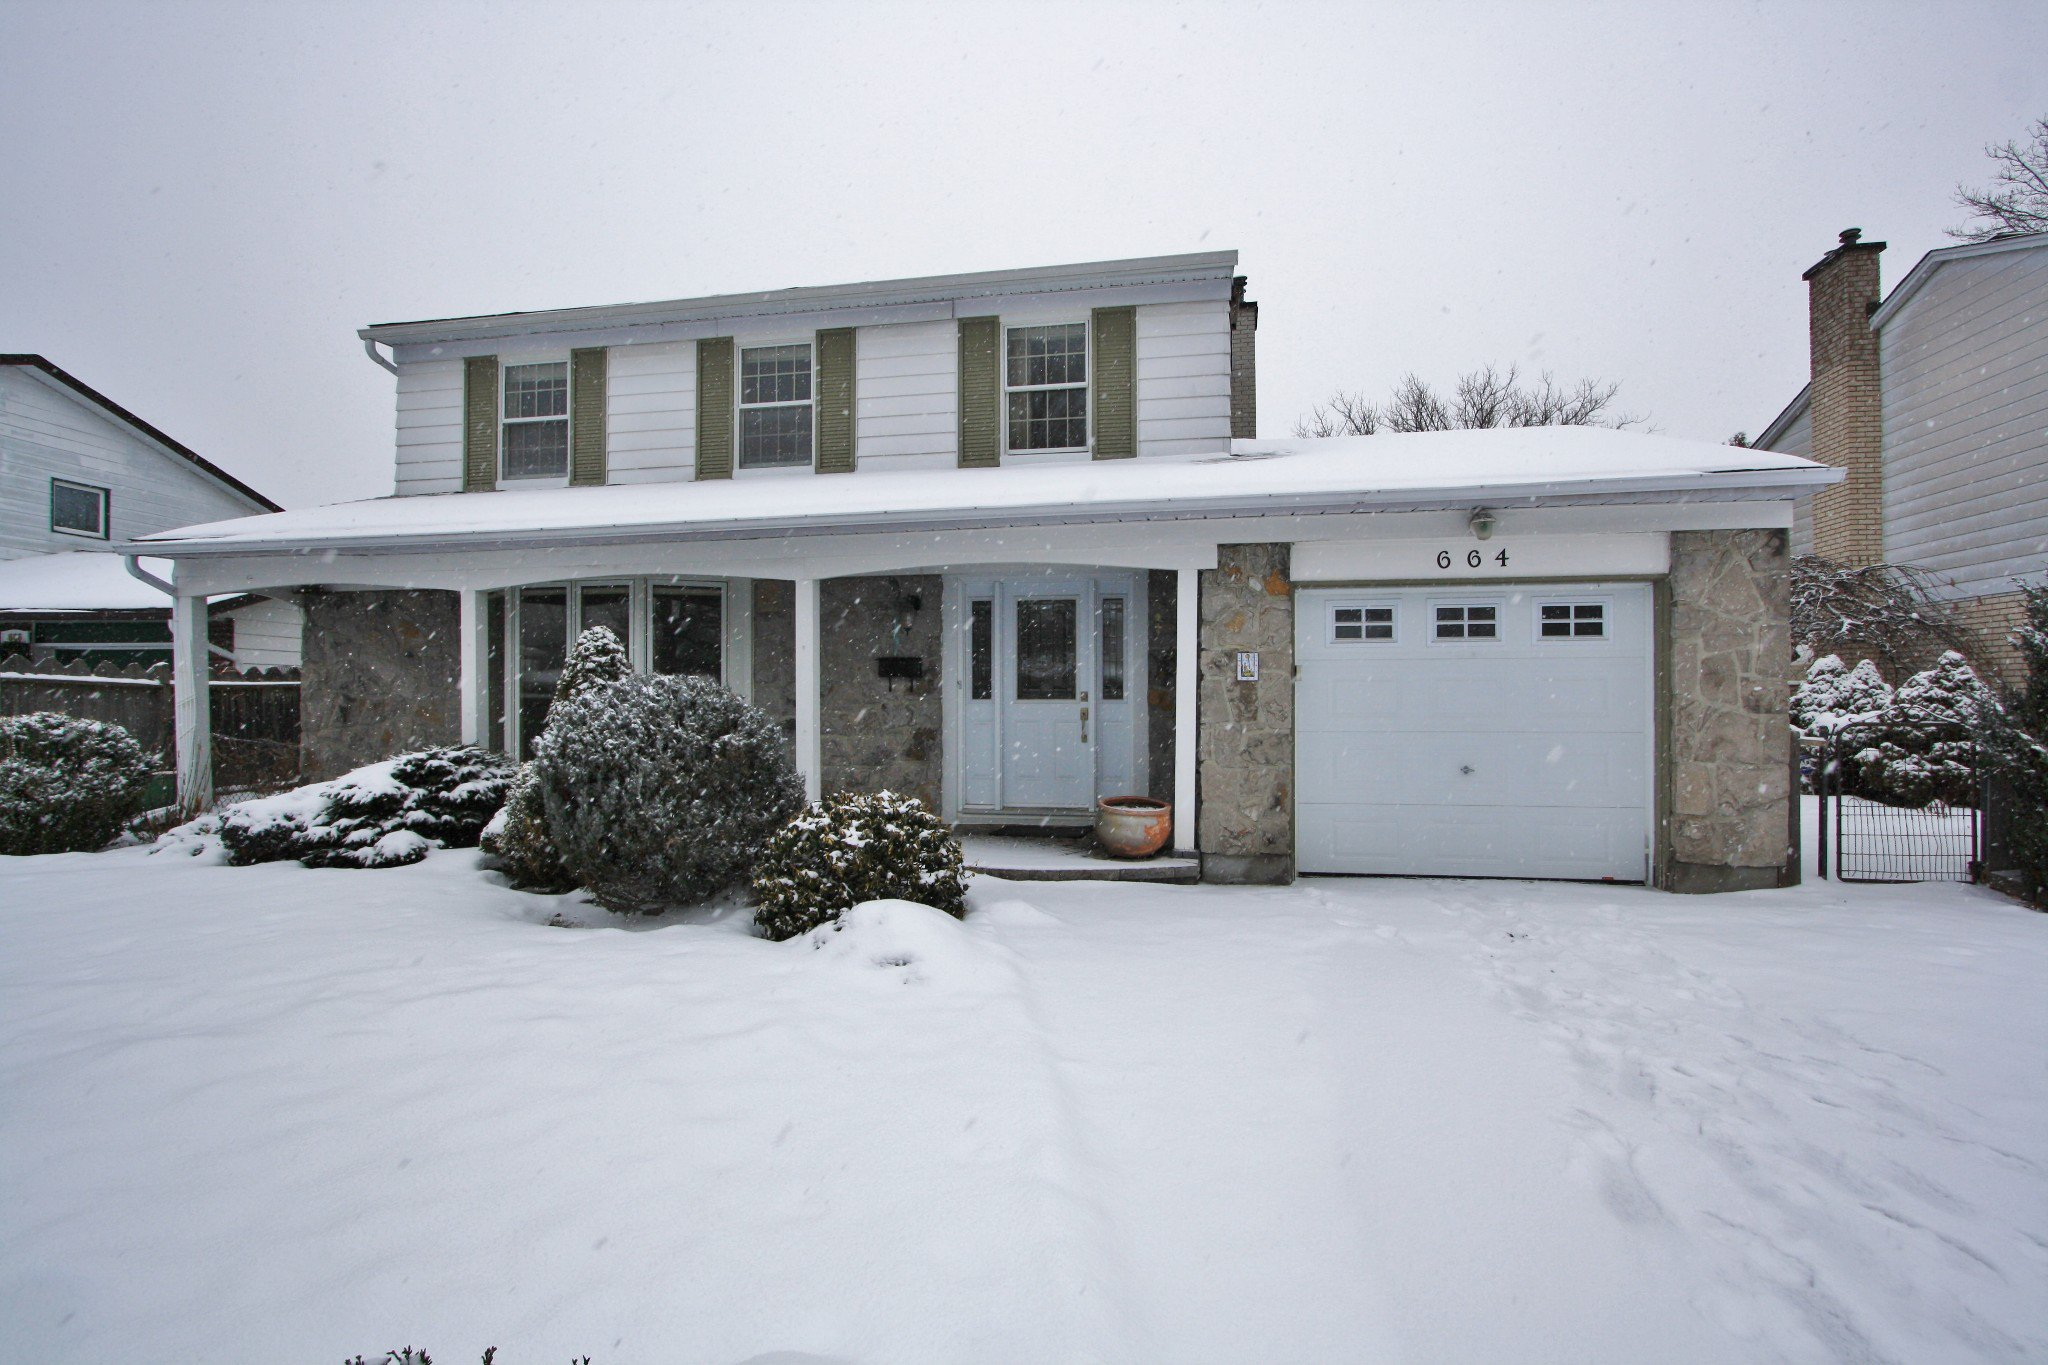 Main Photo: 664 Ingram Crescent in Ottawa: House for sale (Beacon Hill North)